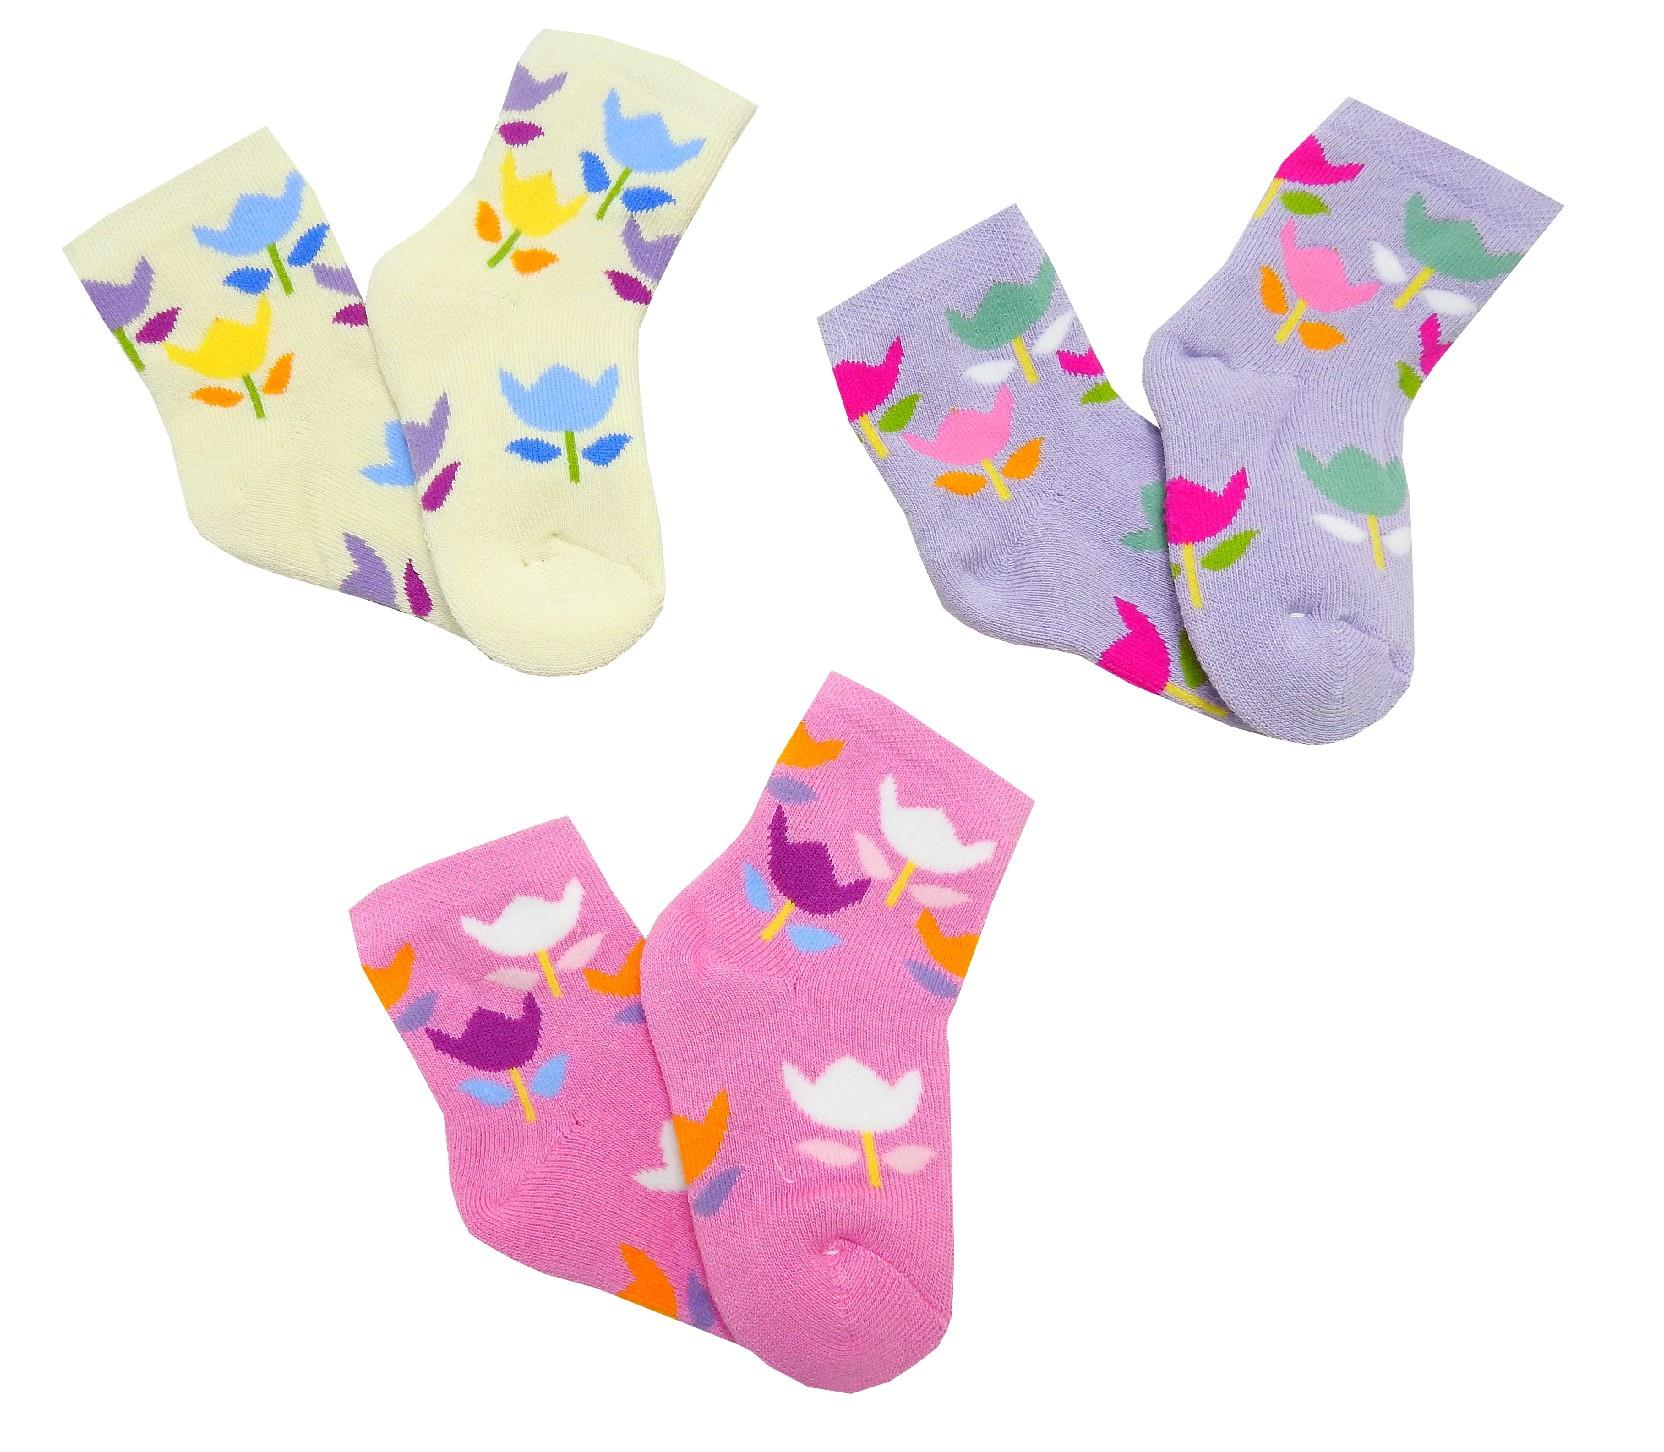 Wholesale flower printed socks for babies 12 pices in package